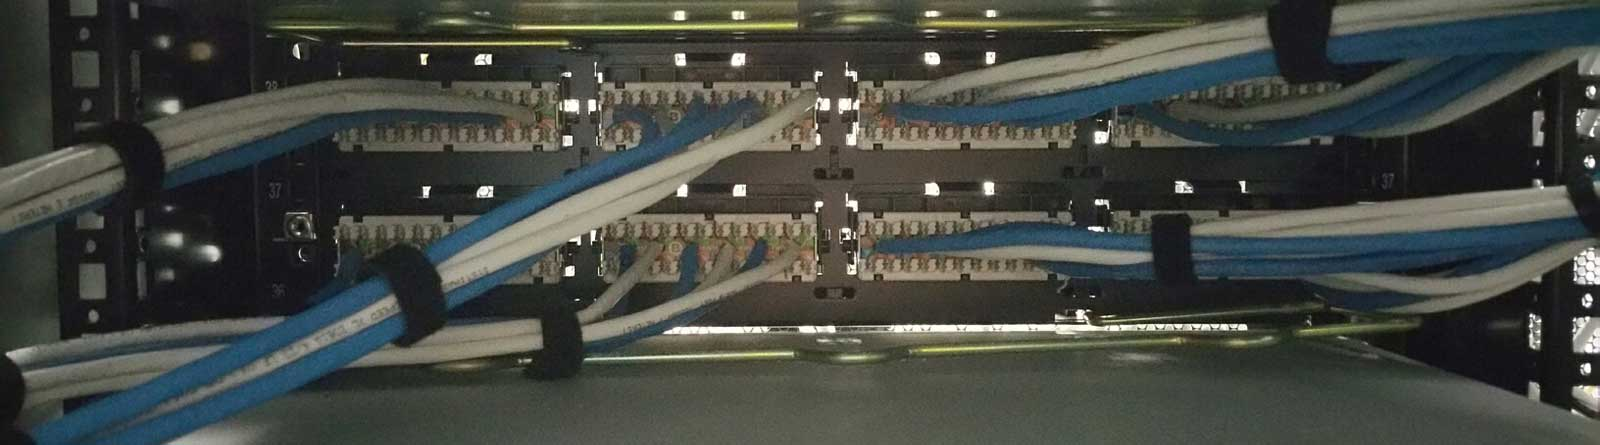 Backside patch panel